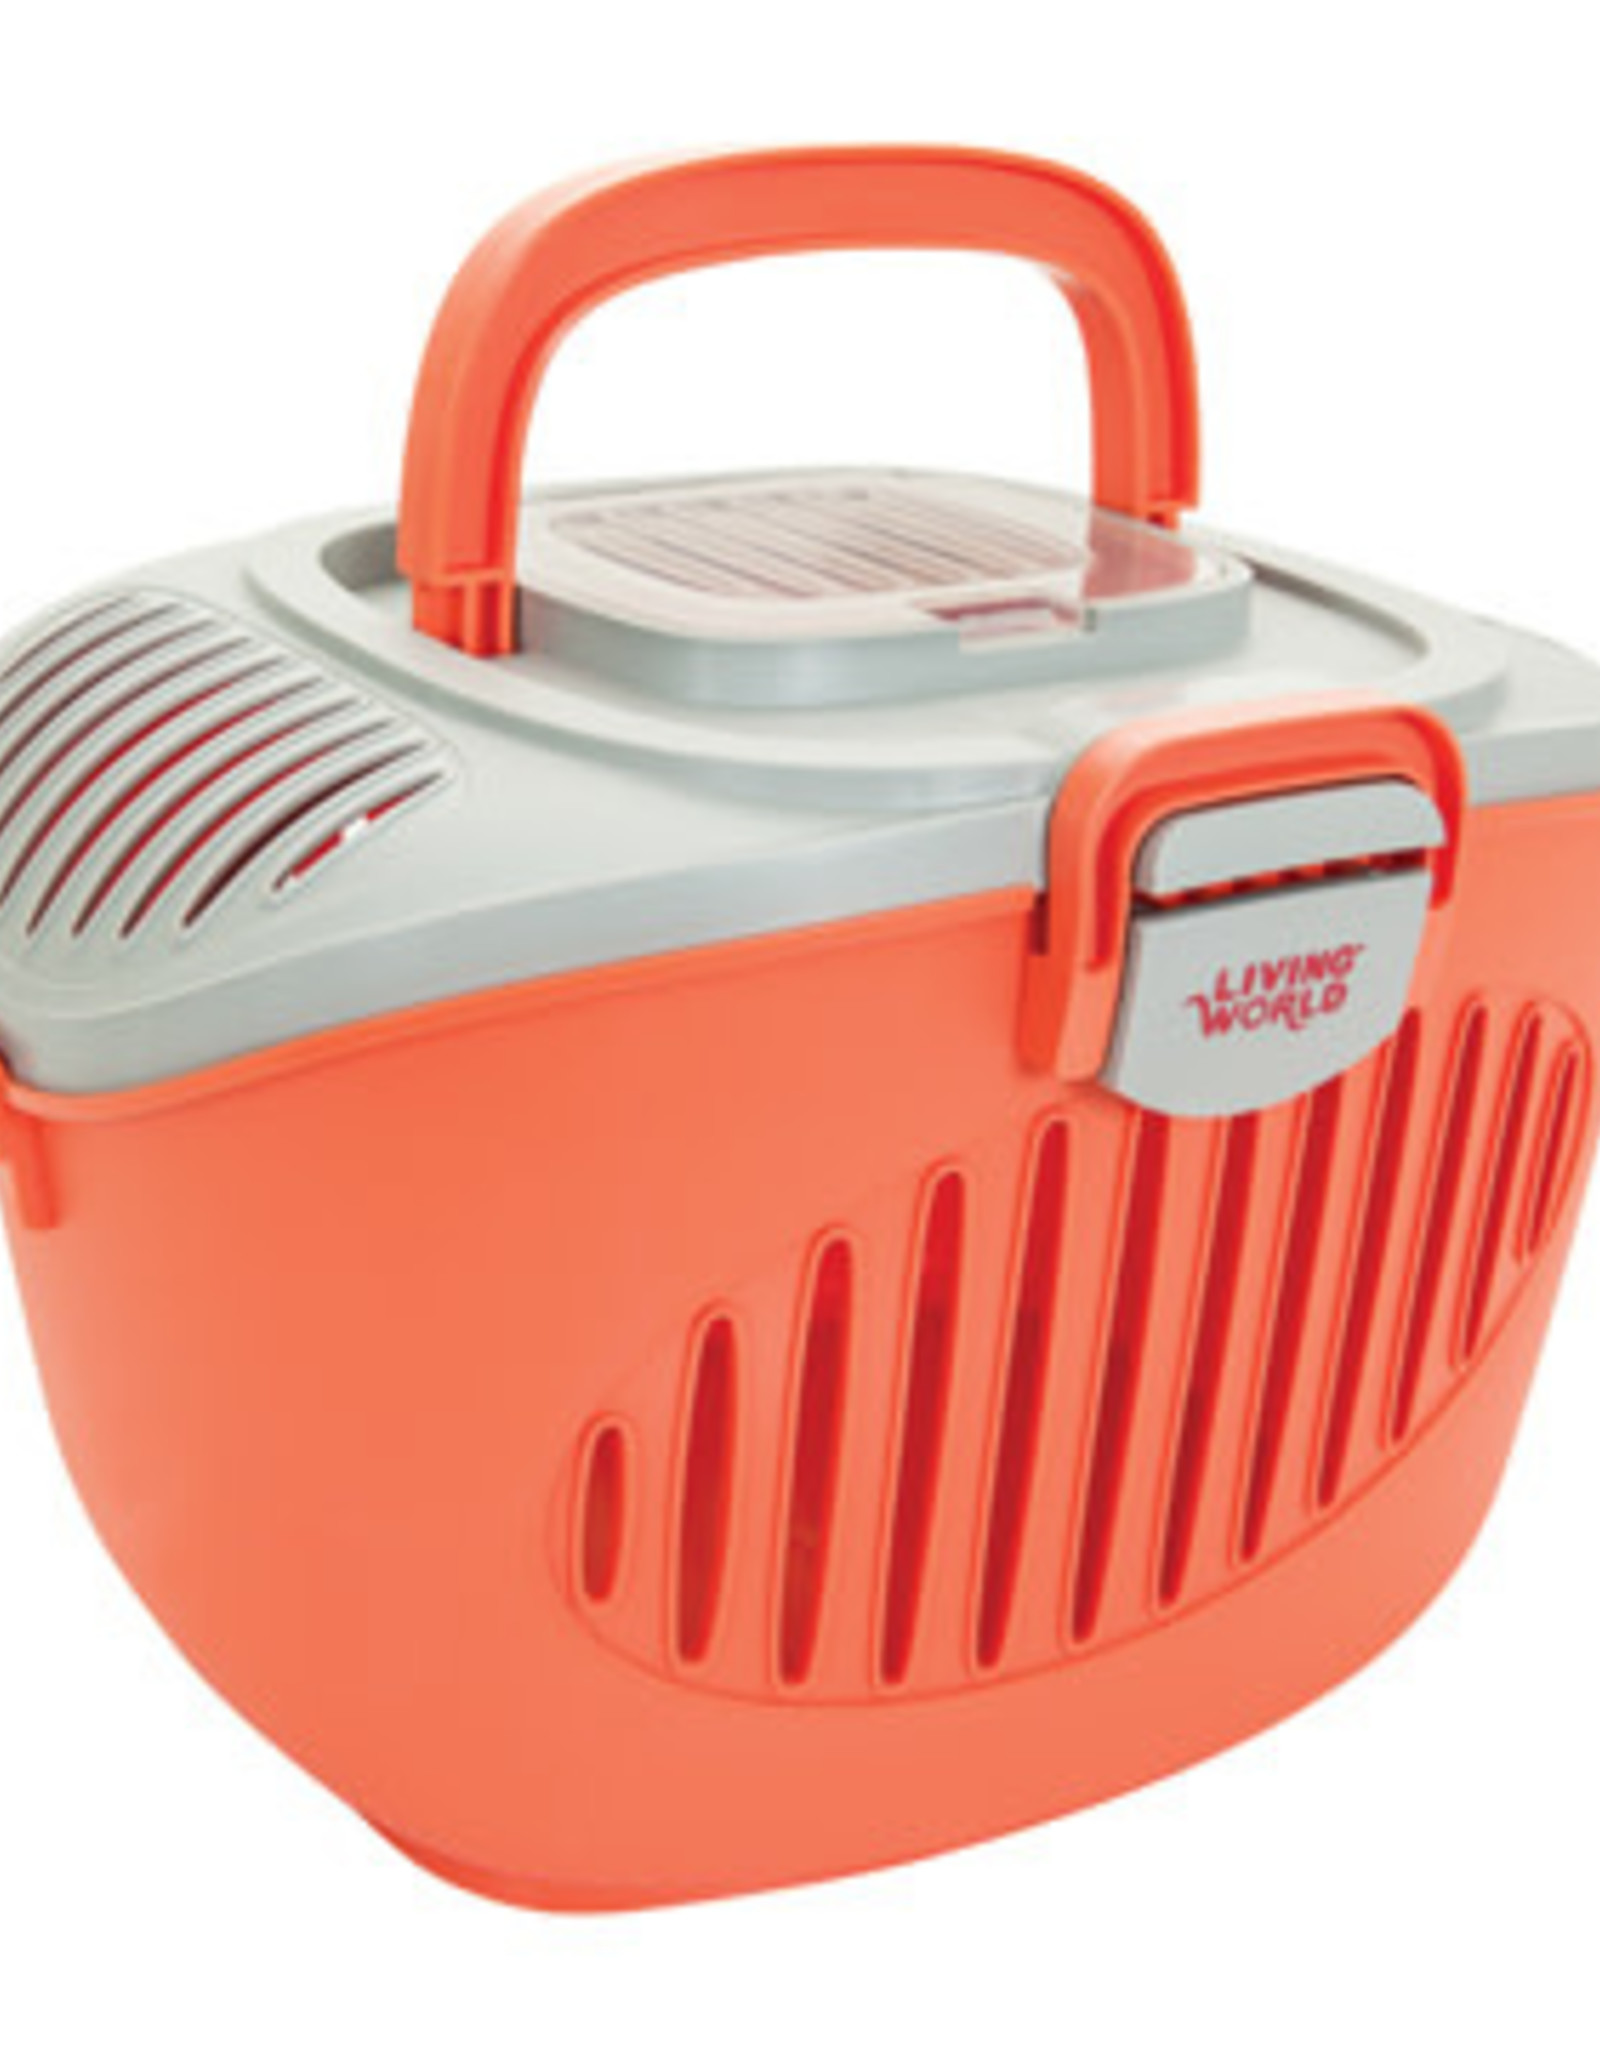 LIVING WORLD Living World Paws2Go Small Animal Carrier, Grey/Red